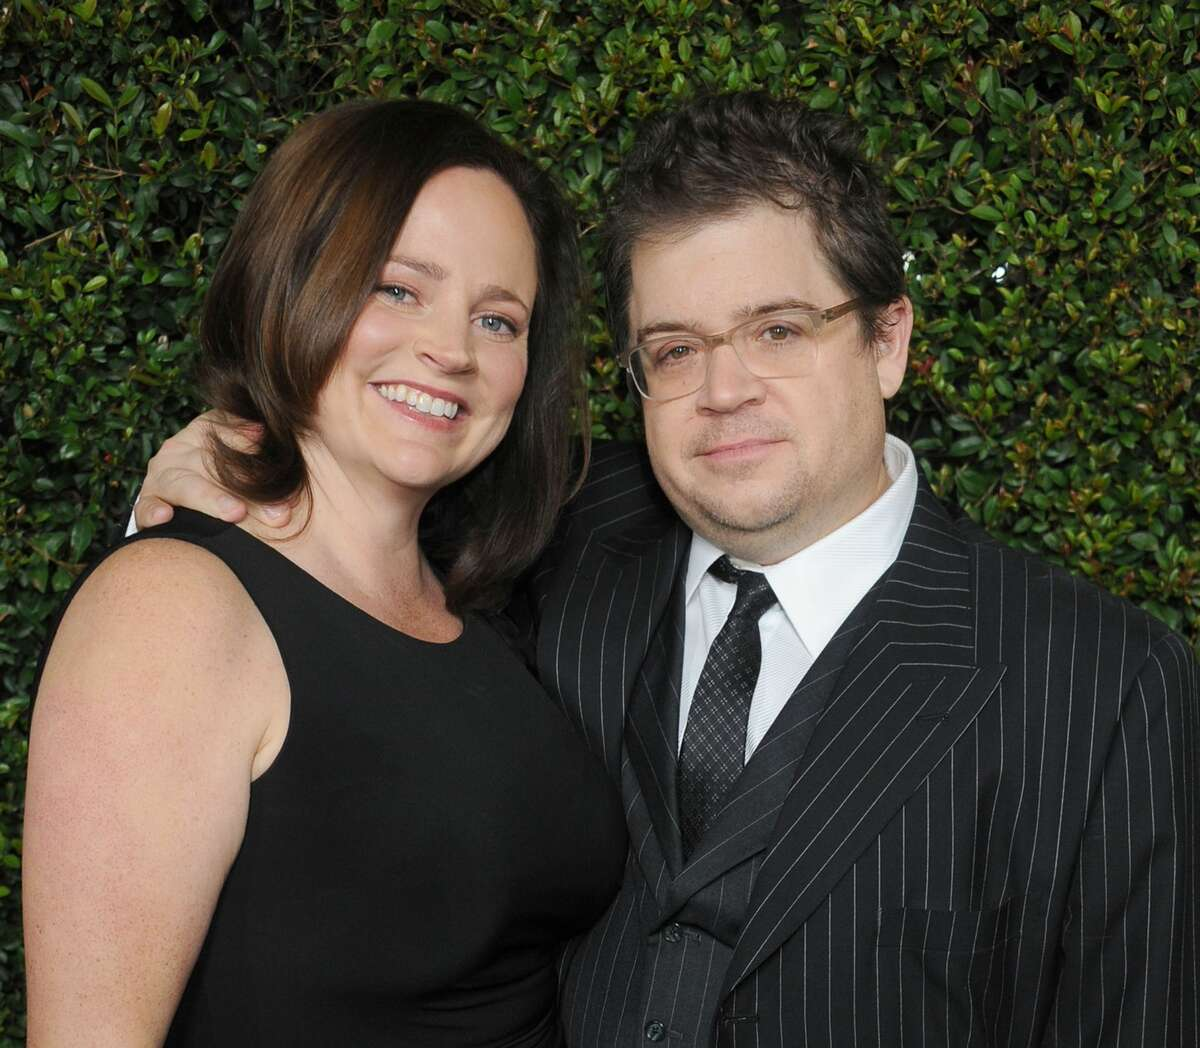 """BEVERLY HILLS, CA - DECEMBER 15: Actor Patton Oswalt and wife Michelle McNamara arrive at the """"Young Adult"""" Los Angeles Premiere at AMPAS Samuel Goldwyn Theater on December 15, 2011 in Beverly Hills, California. (Photo by Gregg DeGuire/FilmMagic)"""